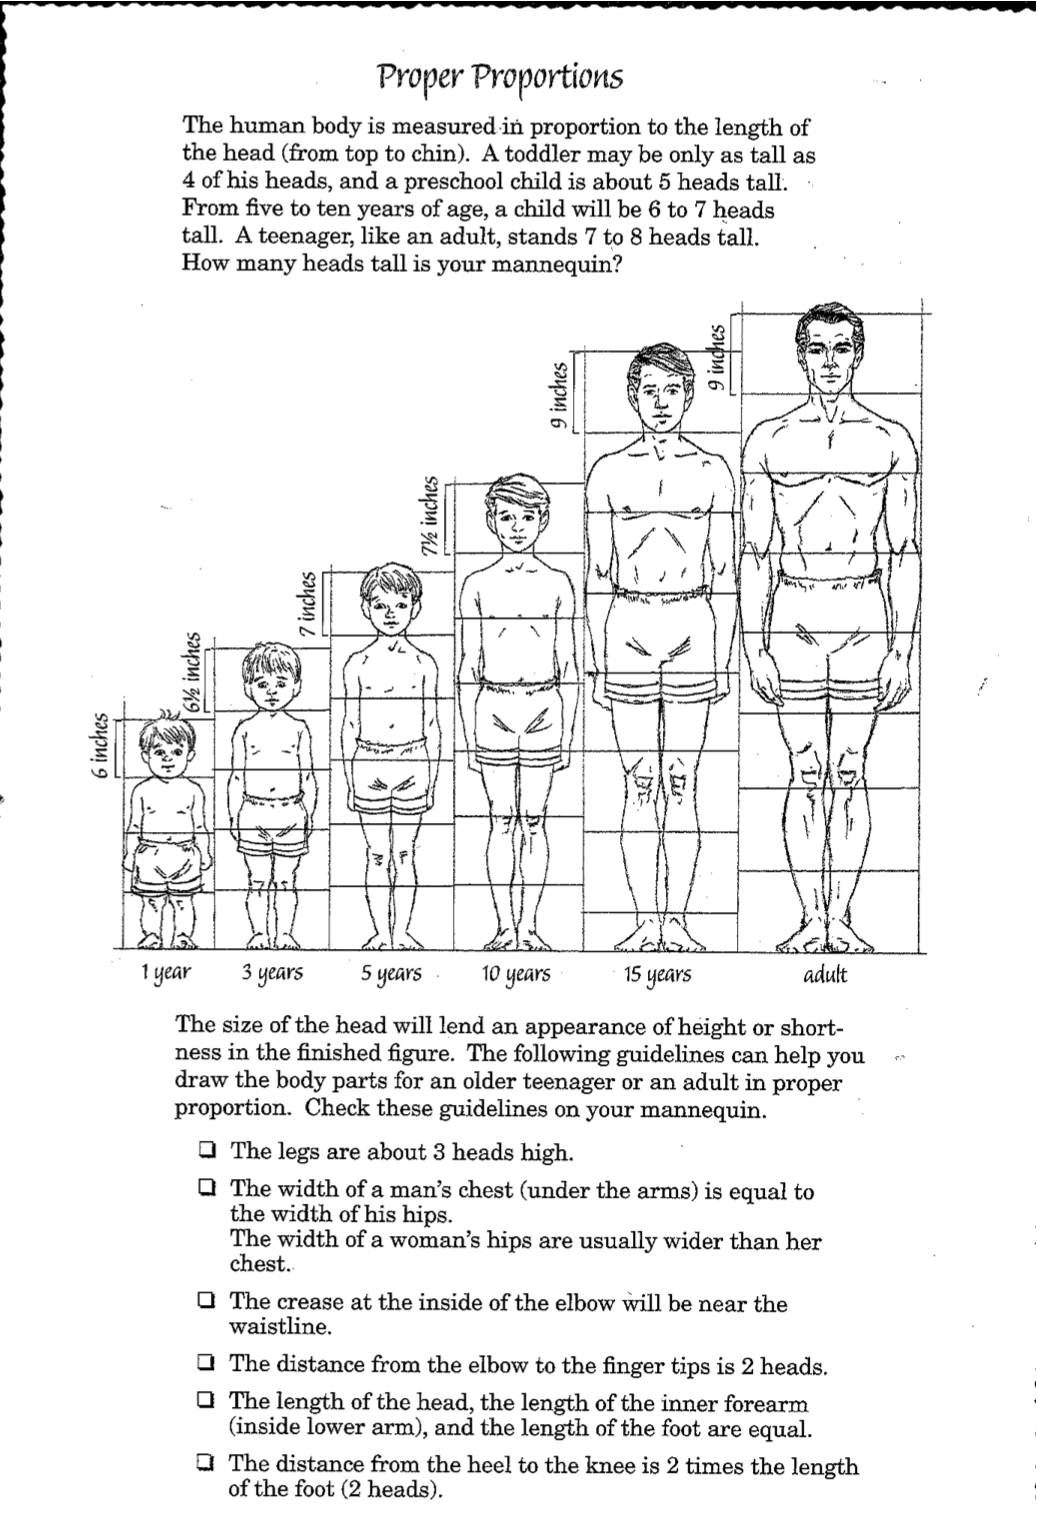 Human Proportions With Images